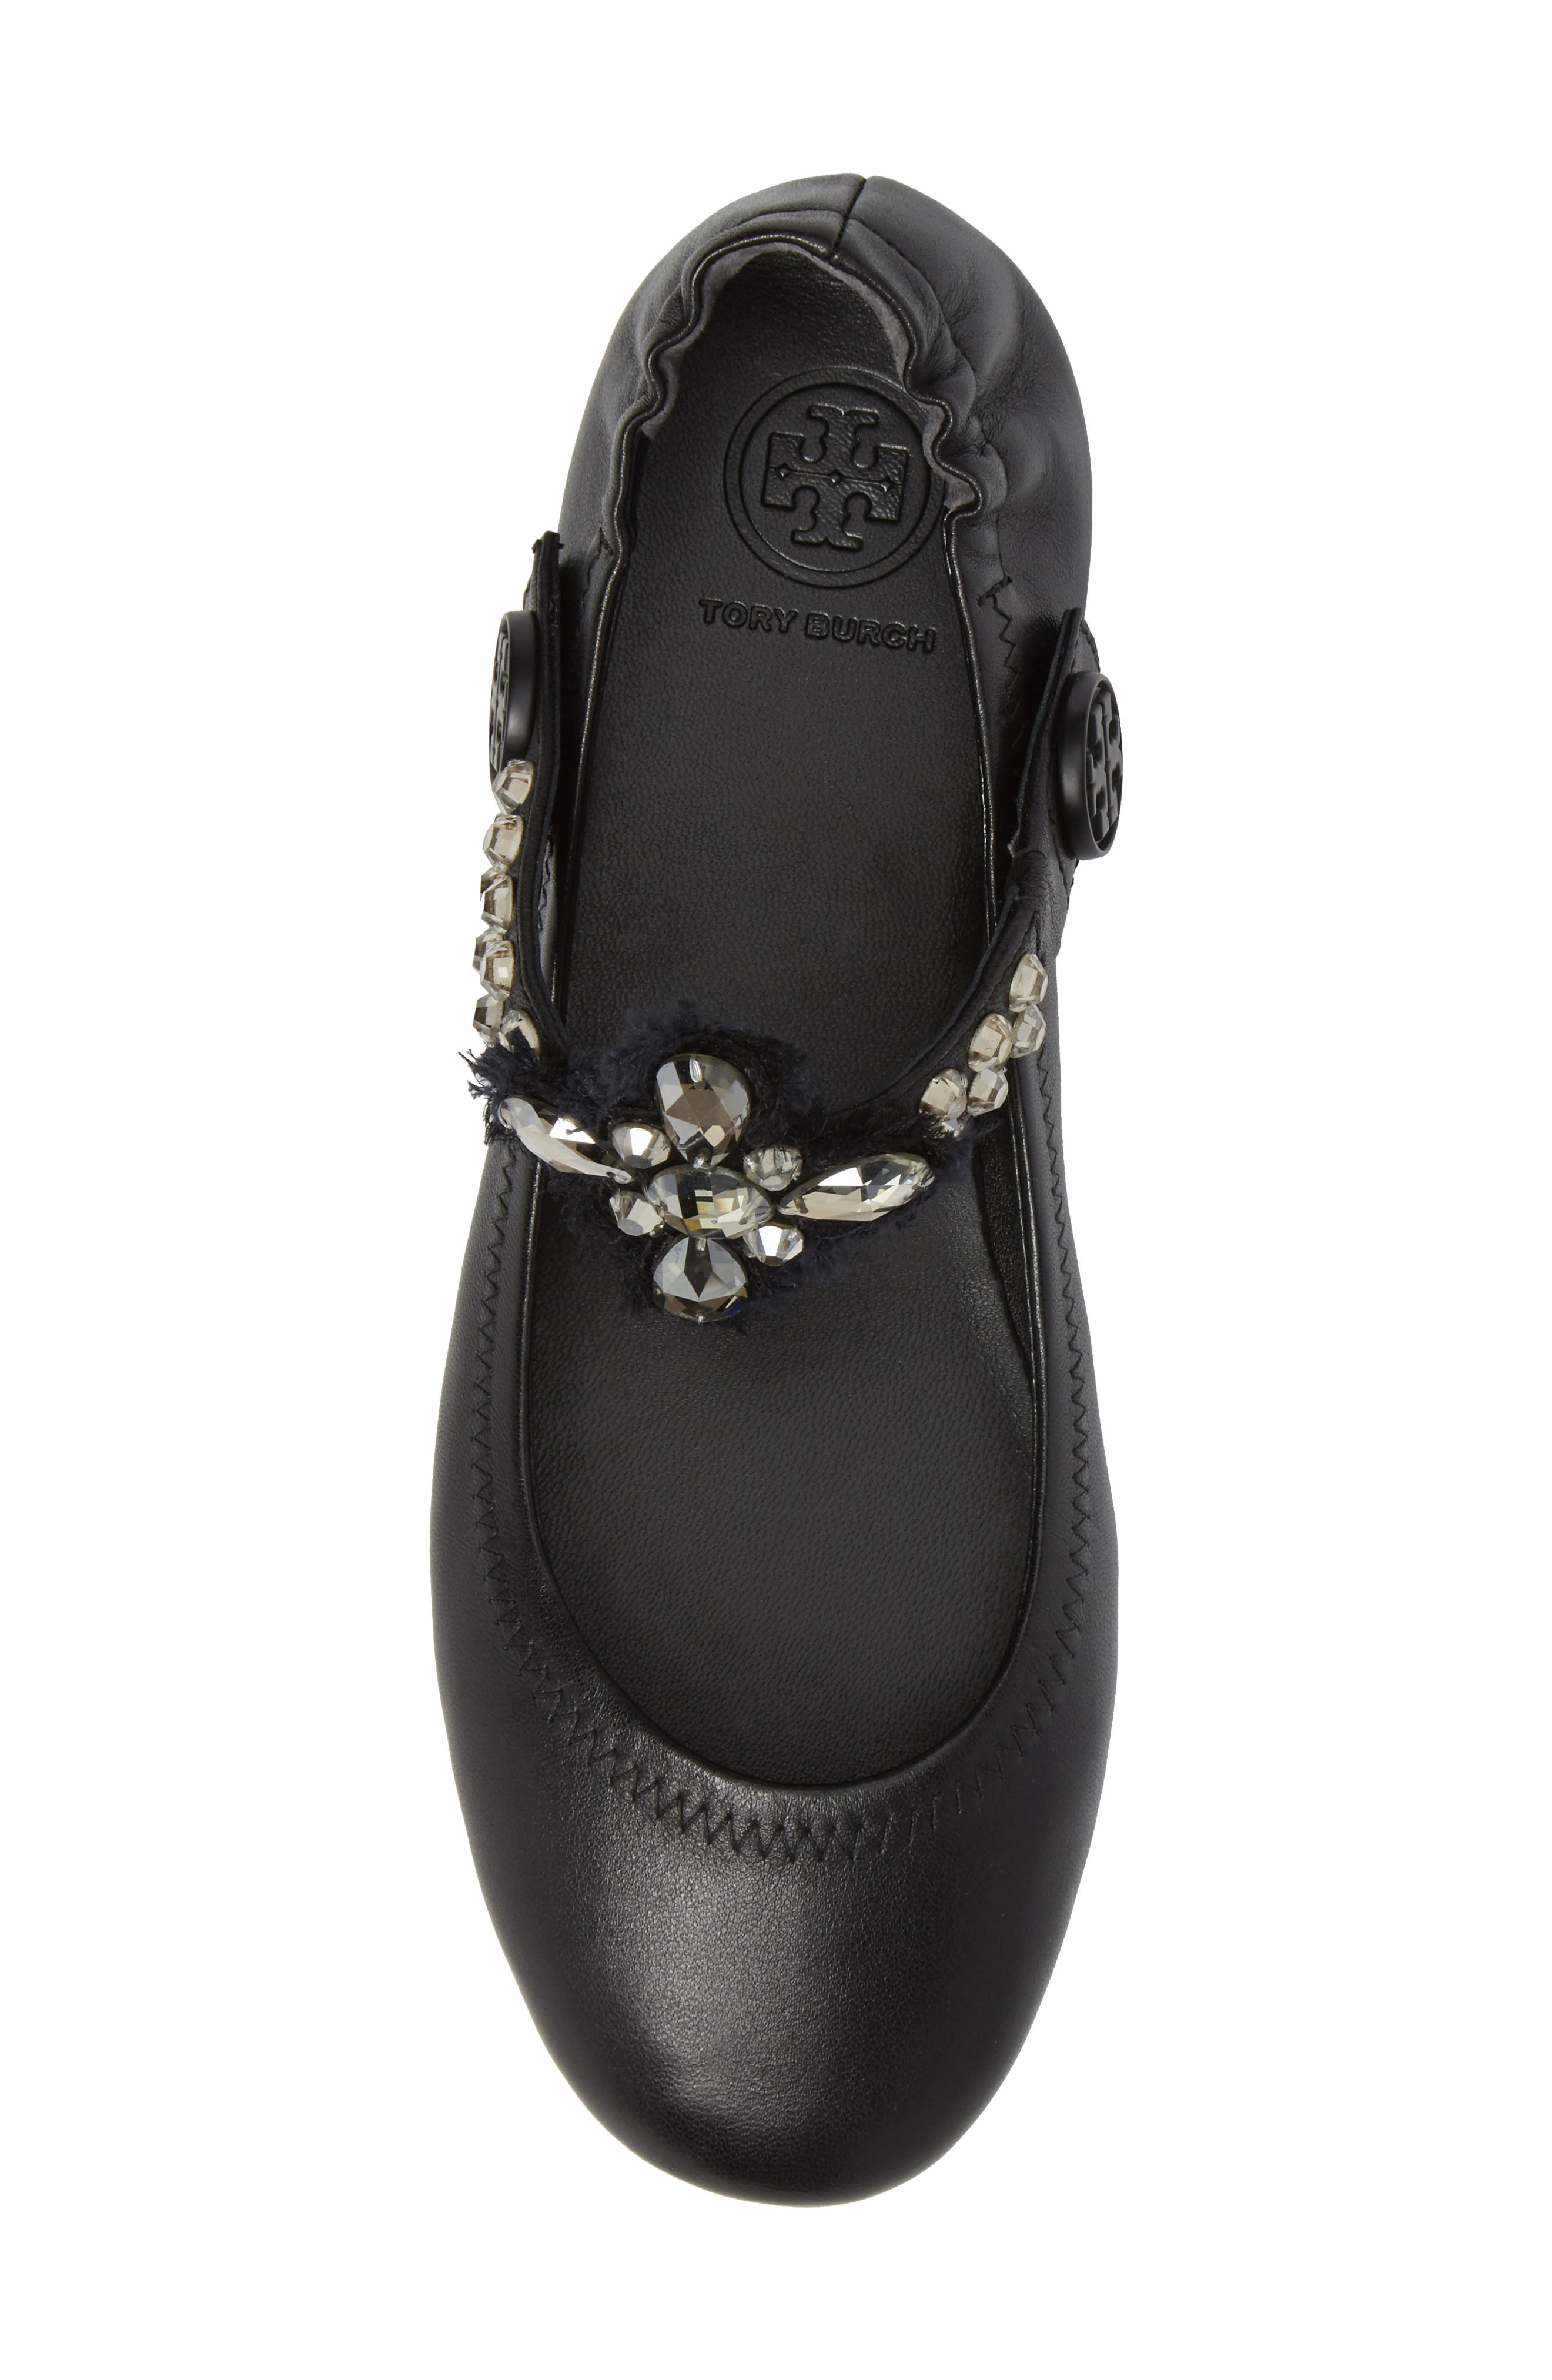 Minnie Embellished Convertible Strap Ballet Flat,                             Alternate thumbnail 5, color,                             Black/ Clear